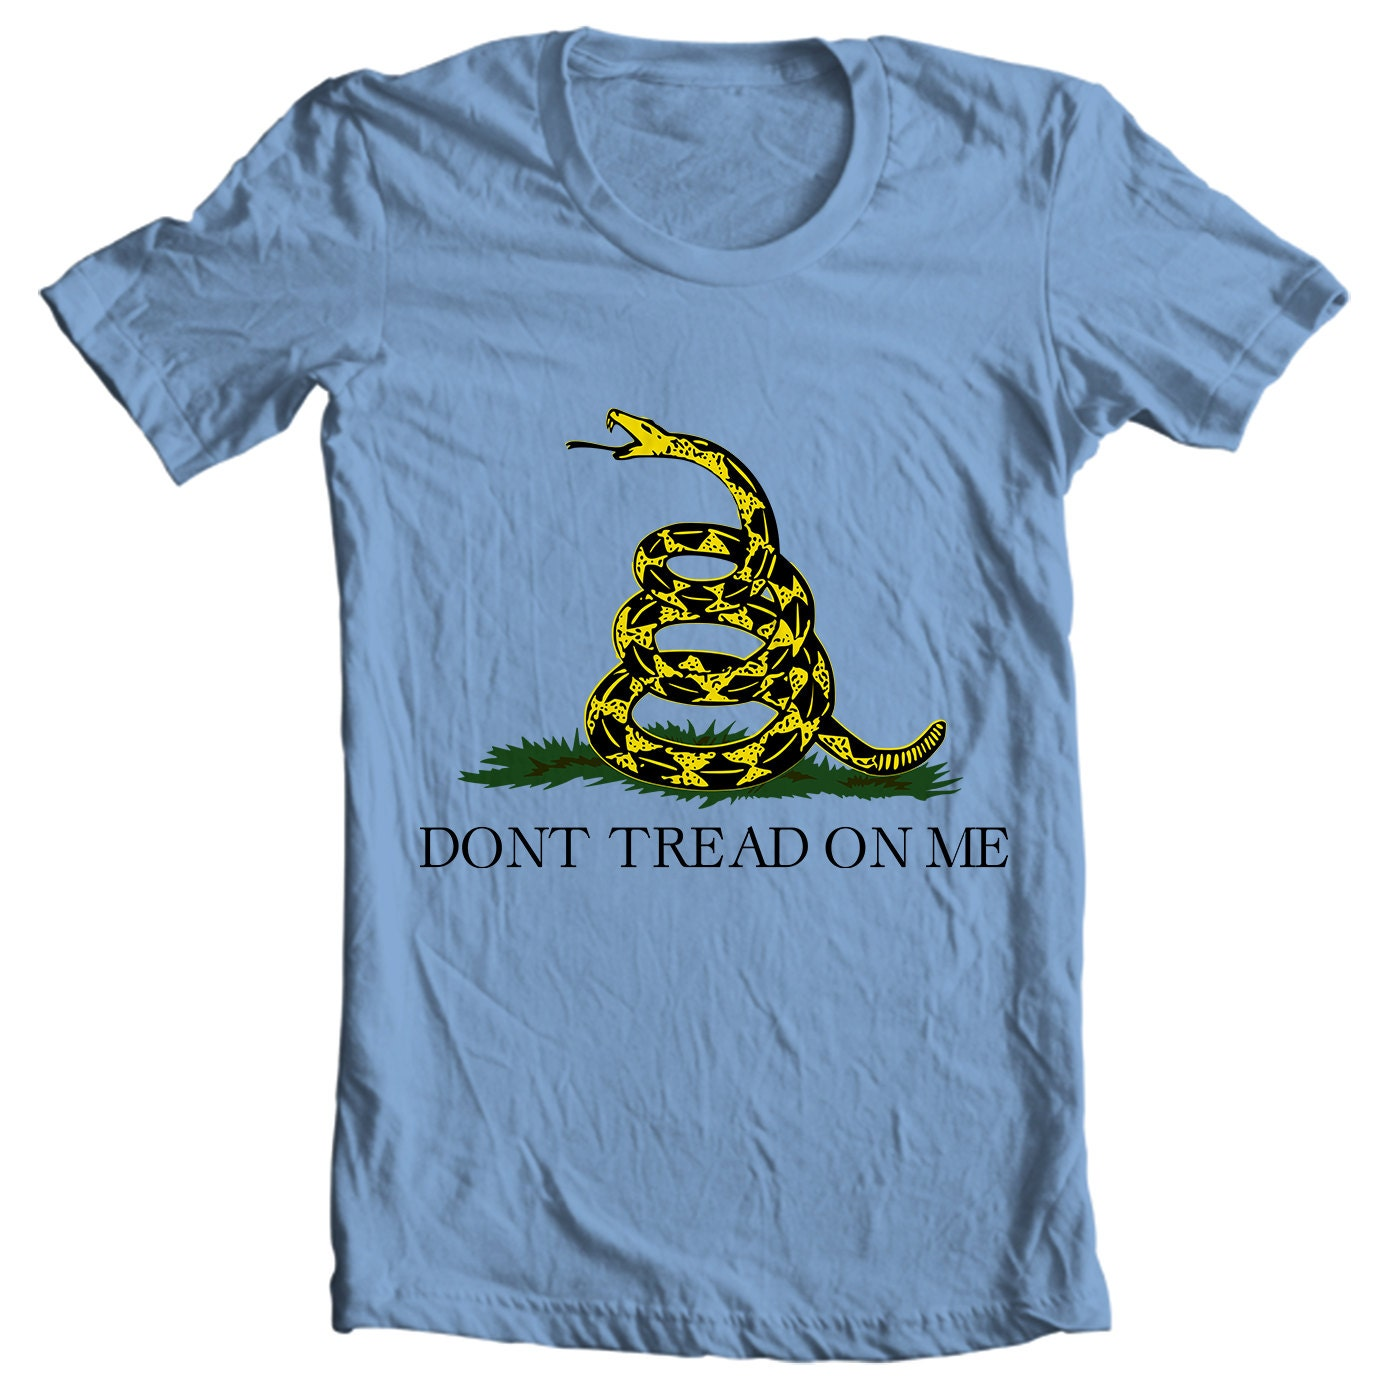 Historical Gadsden Flag T-shirt